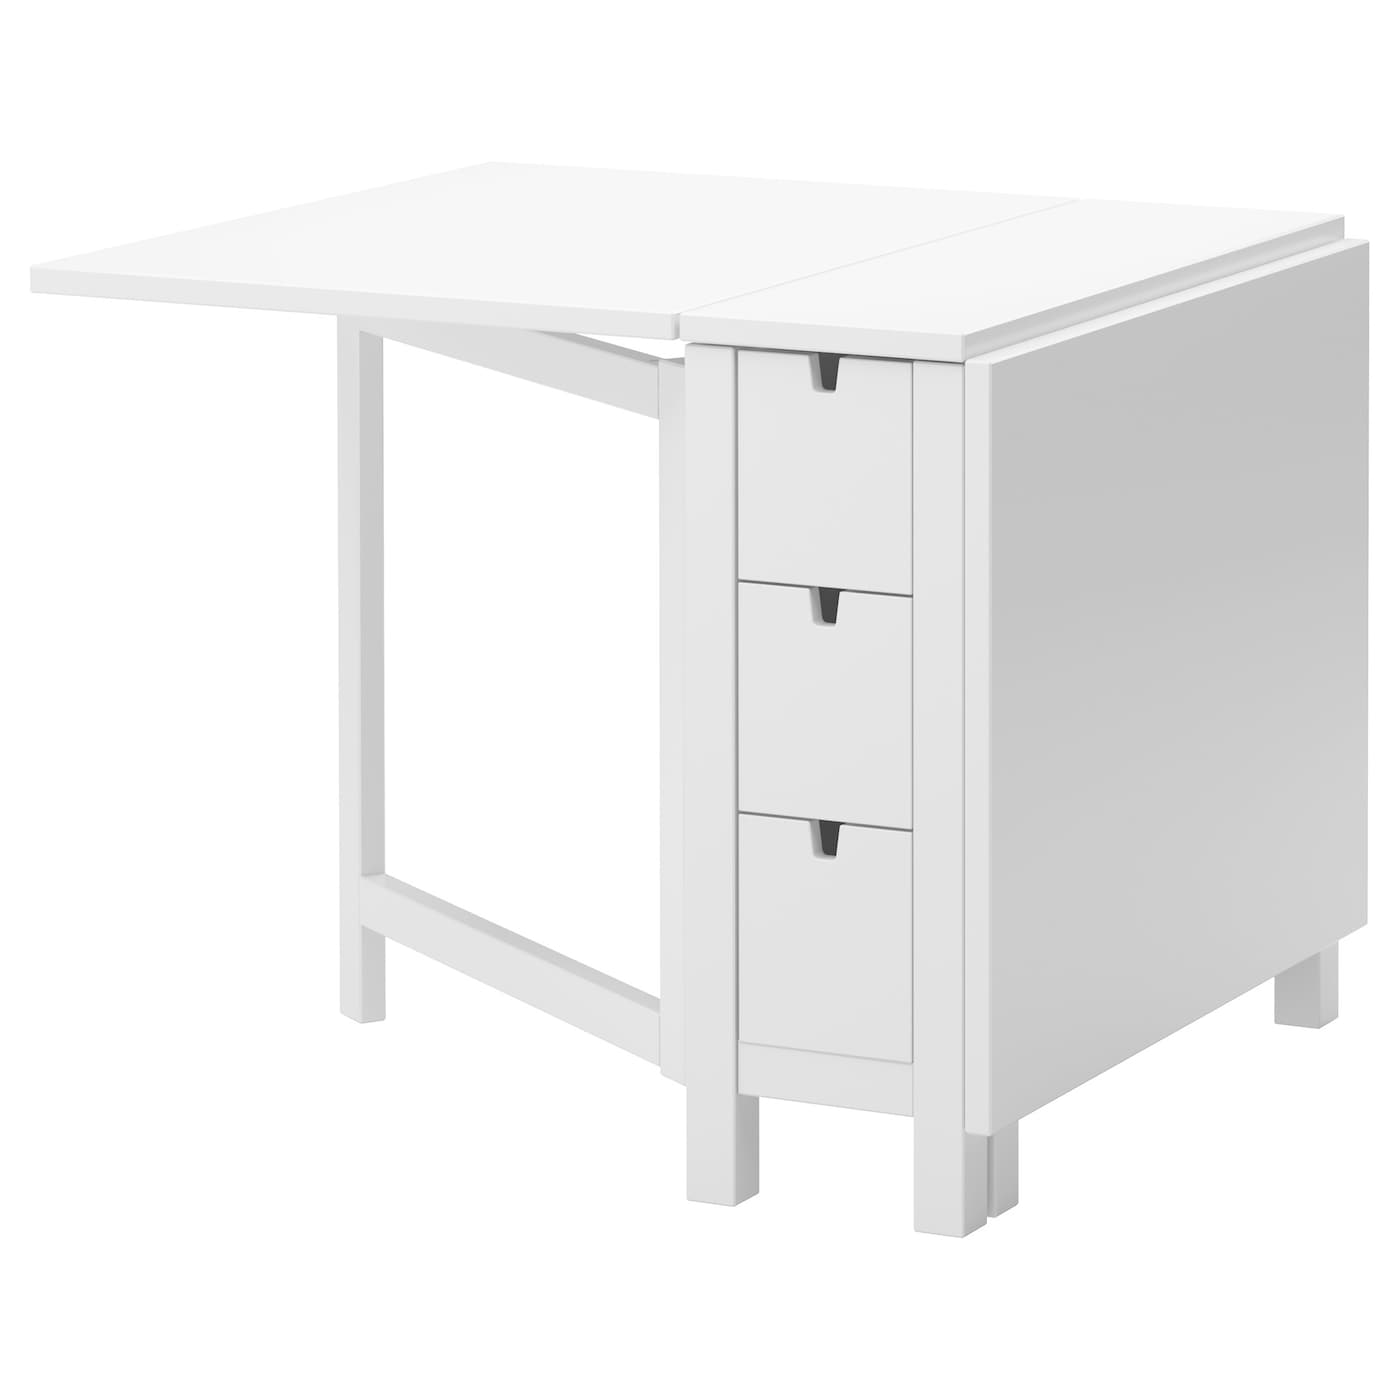 ikea norden gateleg table - Drafting Table Ikea